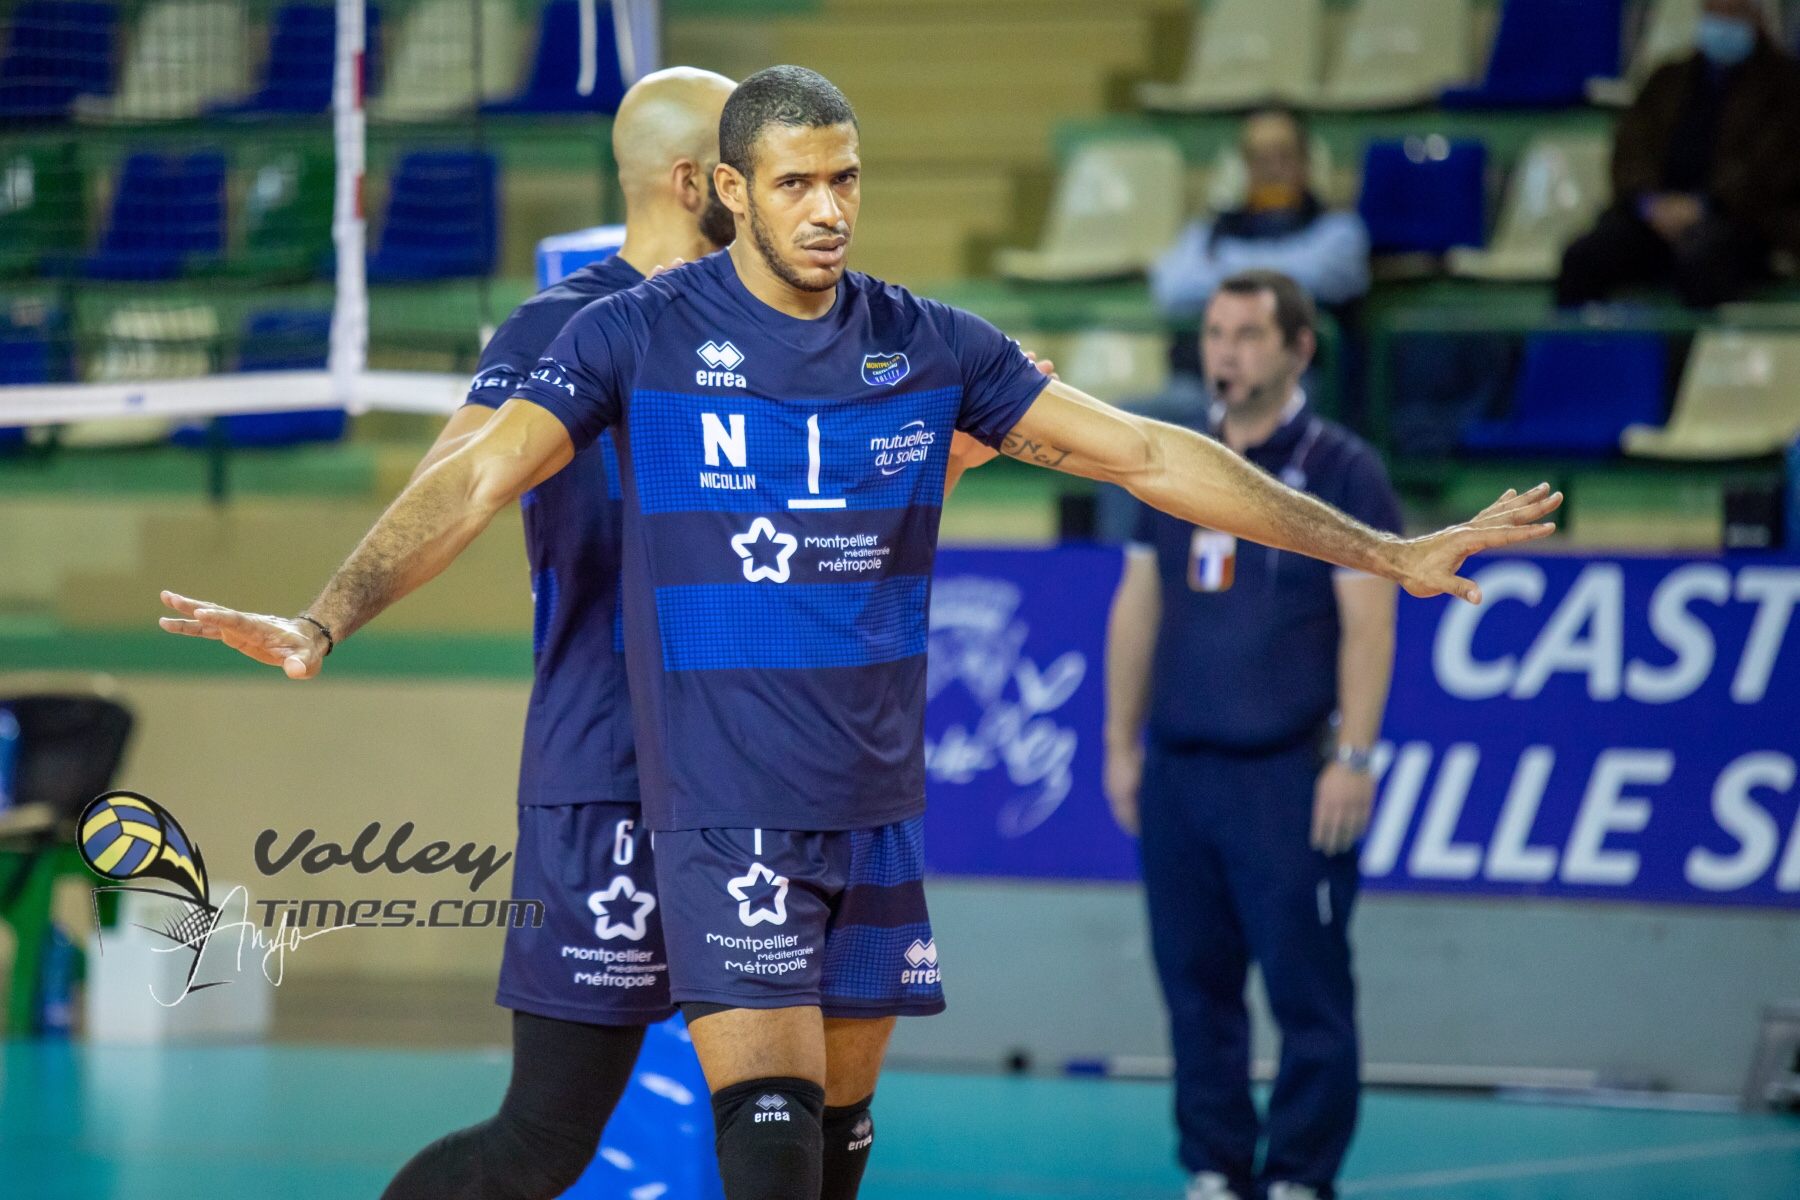 France: Javier Gonzalez stays in Montpellier, Yannick Bazin new setter of Nantes